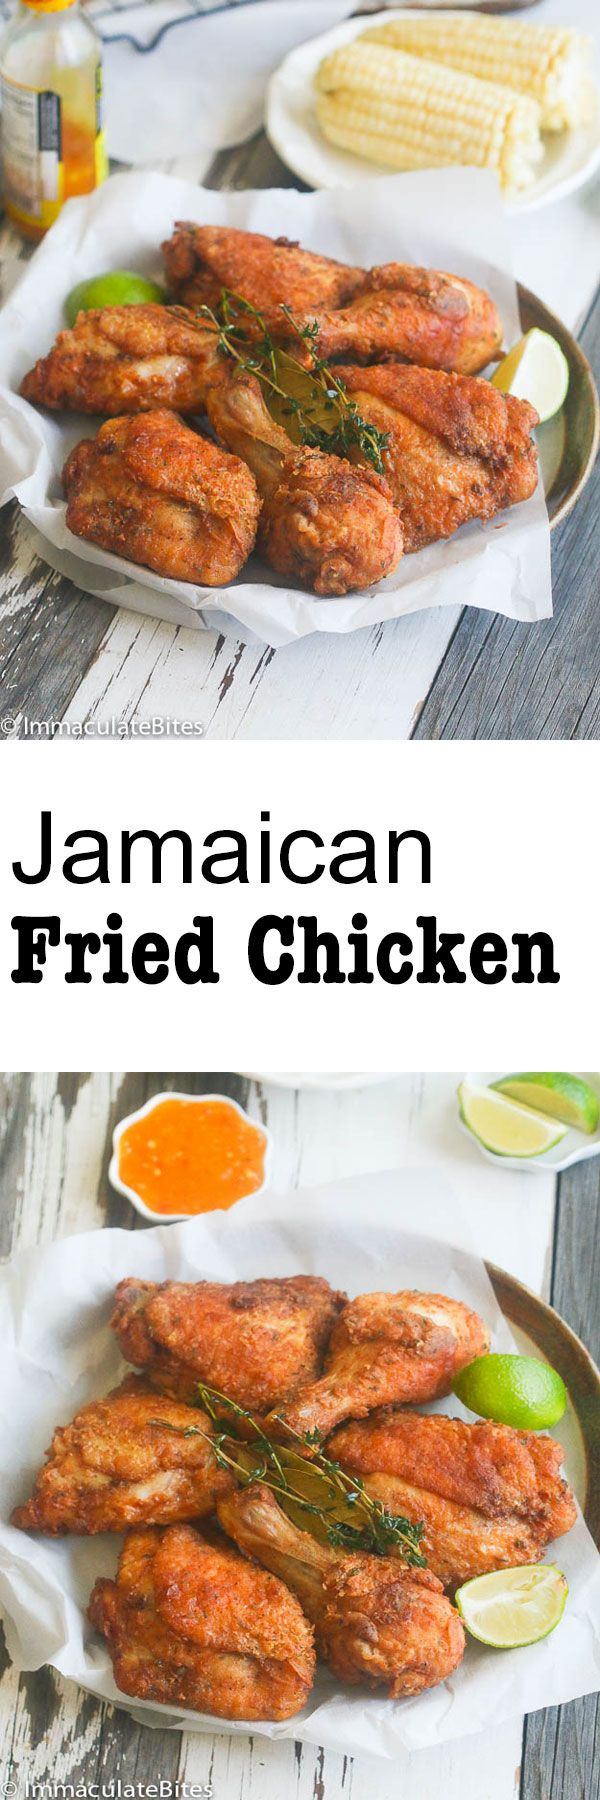 Jamaican Fried Chicken –Golden brown crispy crunchy Chicken. Highly spiced, decadently tender, Bad to the bone and Finger lickin' good! Comfort food at it's BES